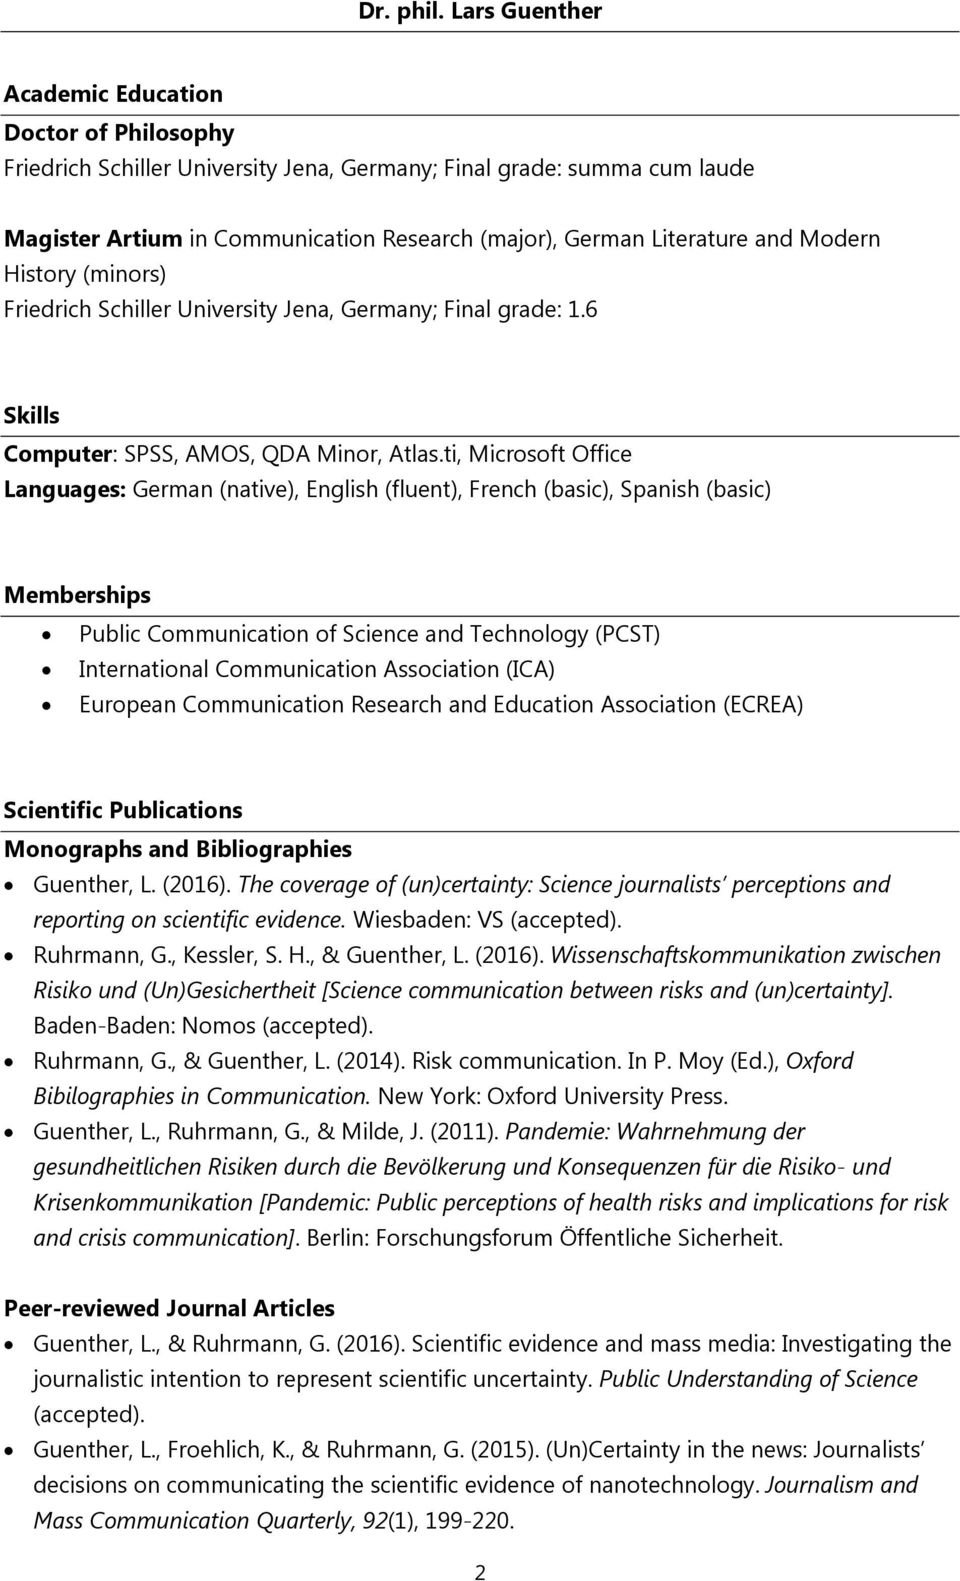 ti, Microsoft Office Languages: German (native), English (fluent), French (basic), Spanish (basic) Memberships Public Communication of Science and Technology (PCST) International Communication